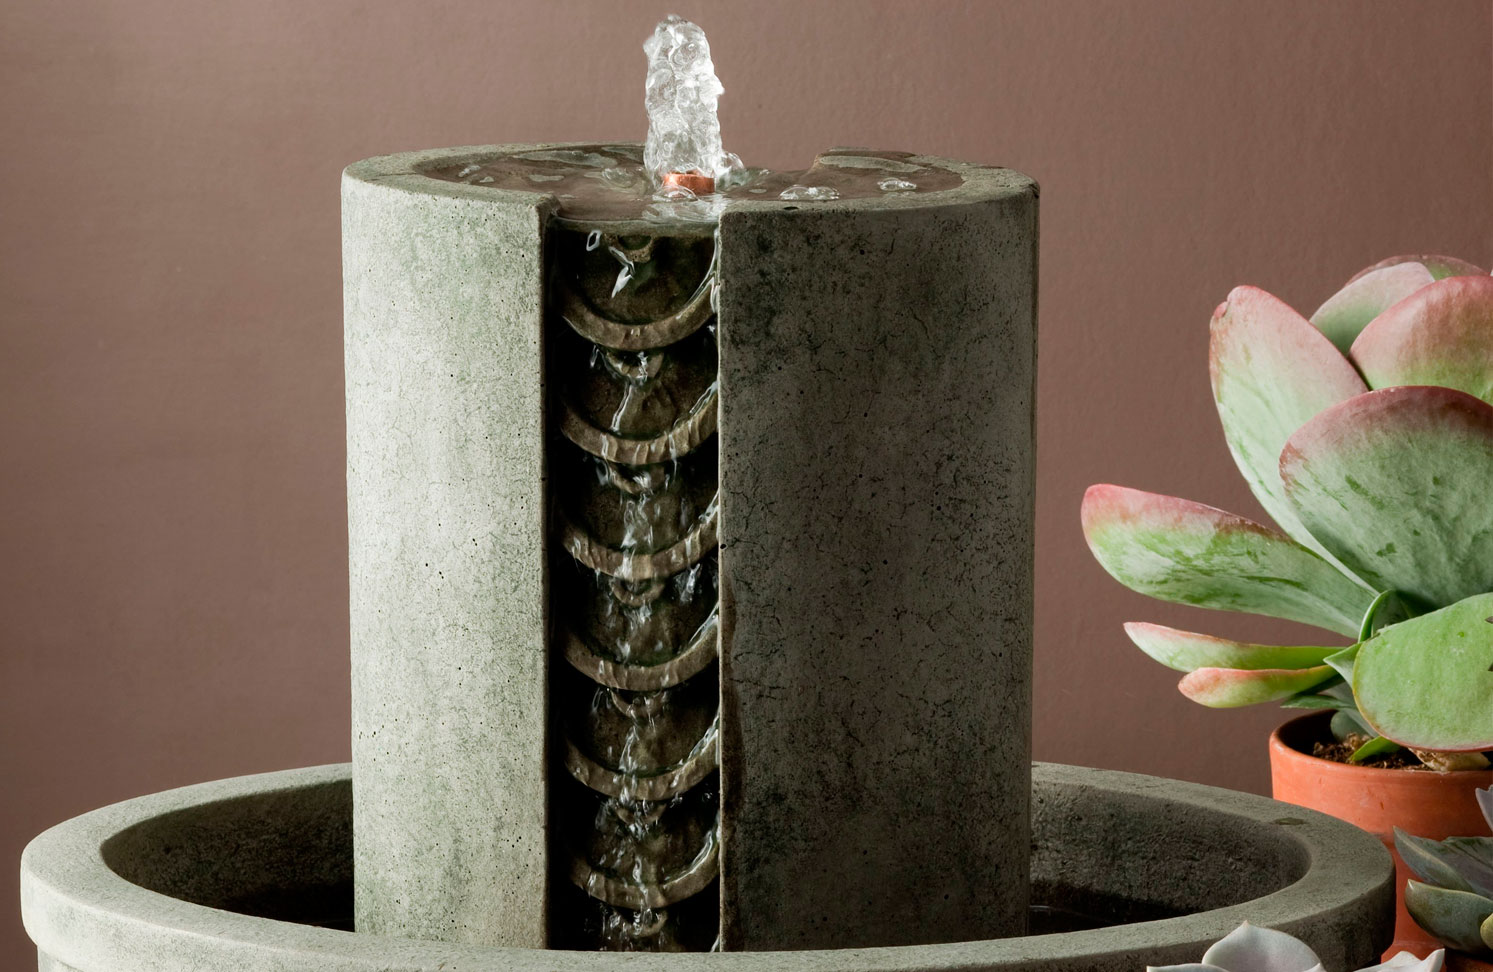 Indoor Water Fountains | For Your Home or Office